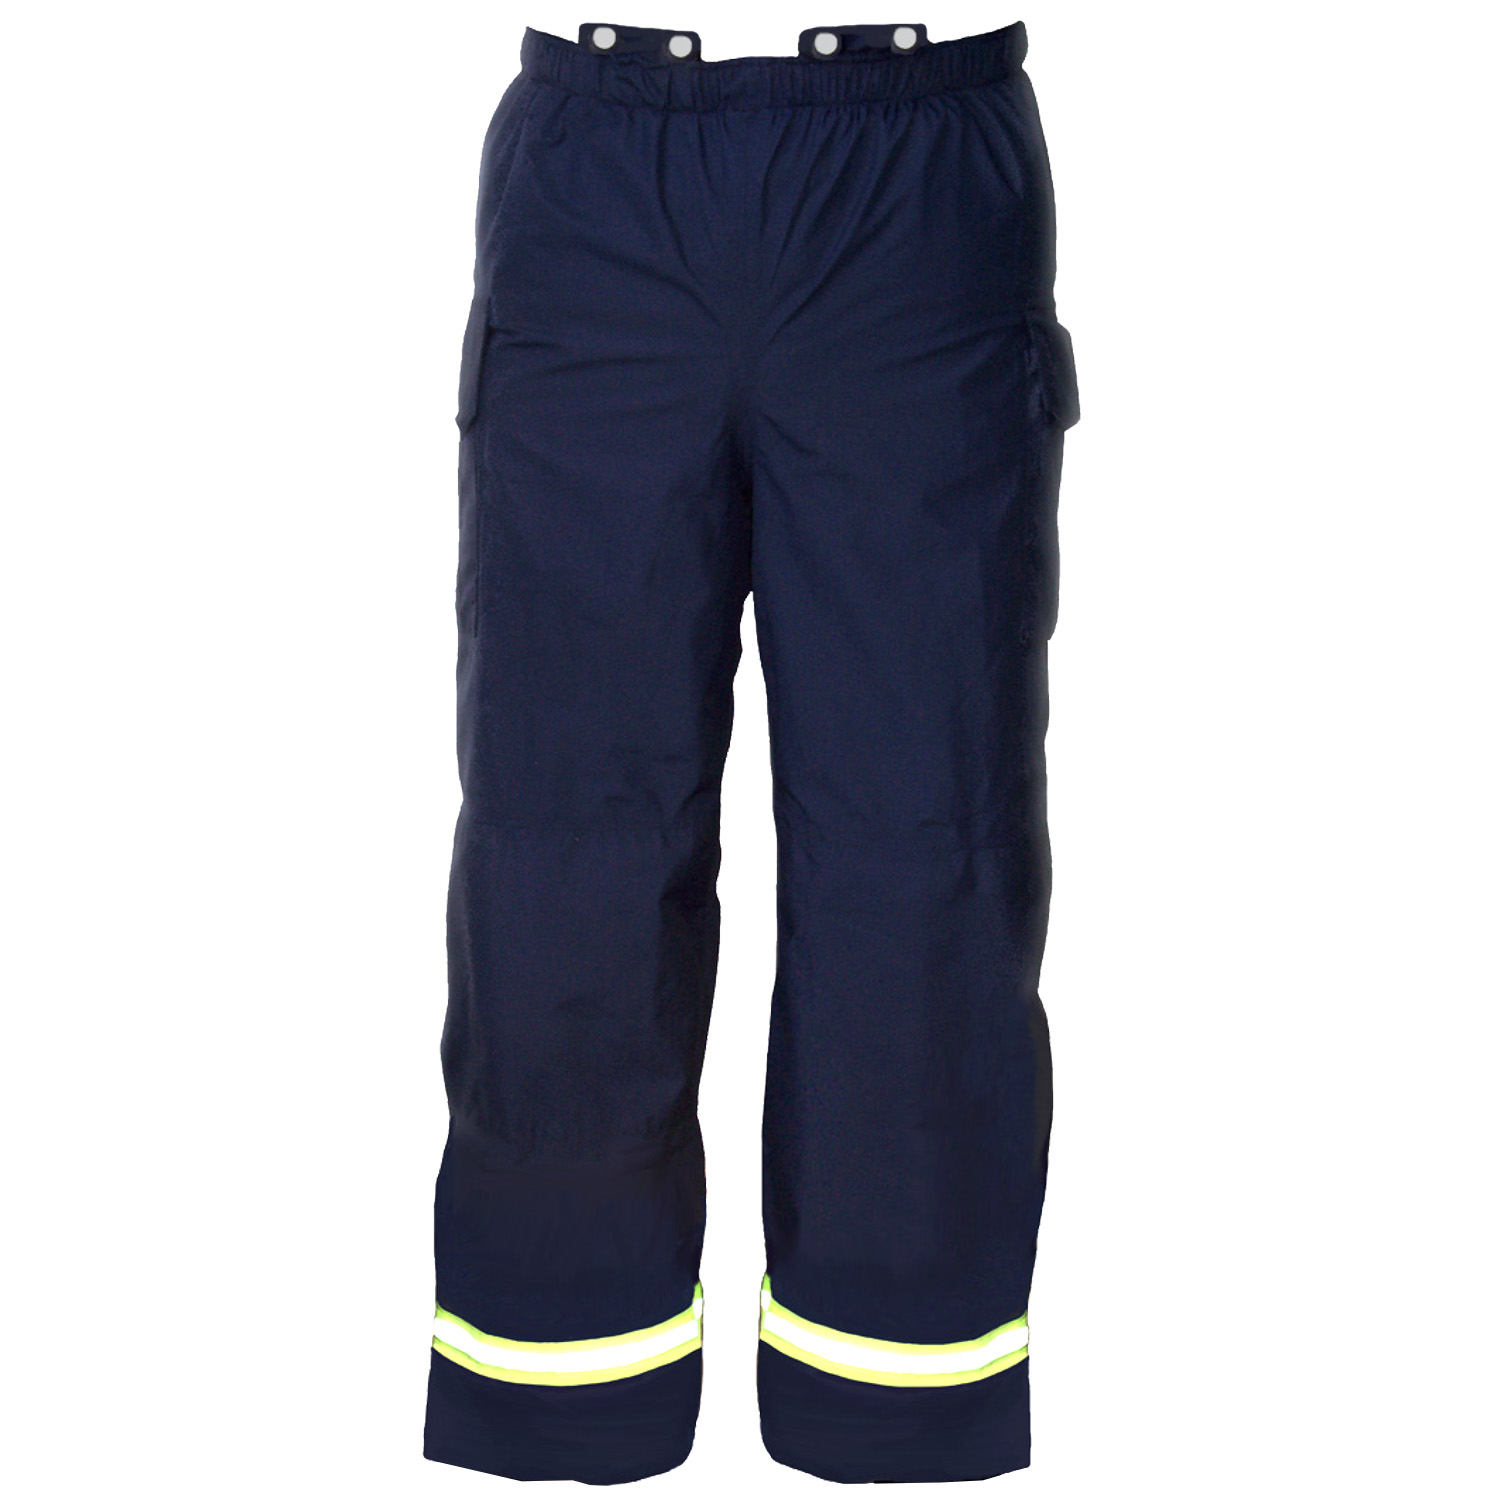 Ricochet FrontLine EMS 206 Series Protective Pants in Navy Blue